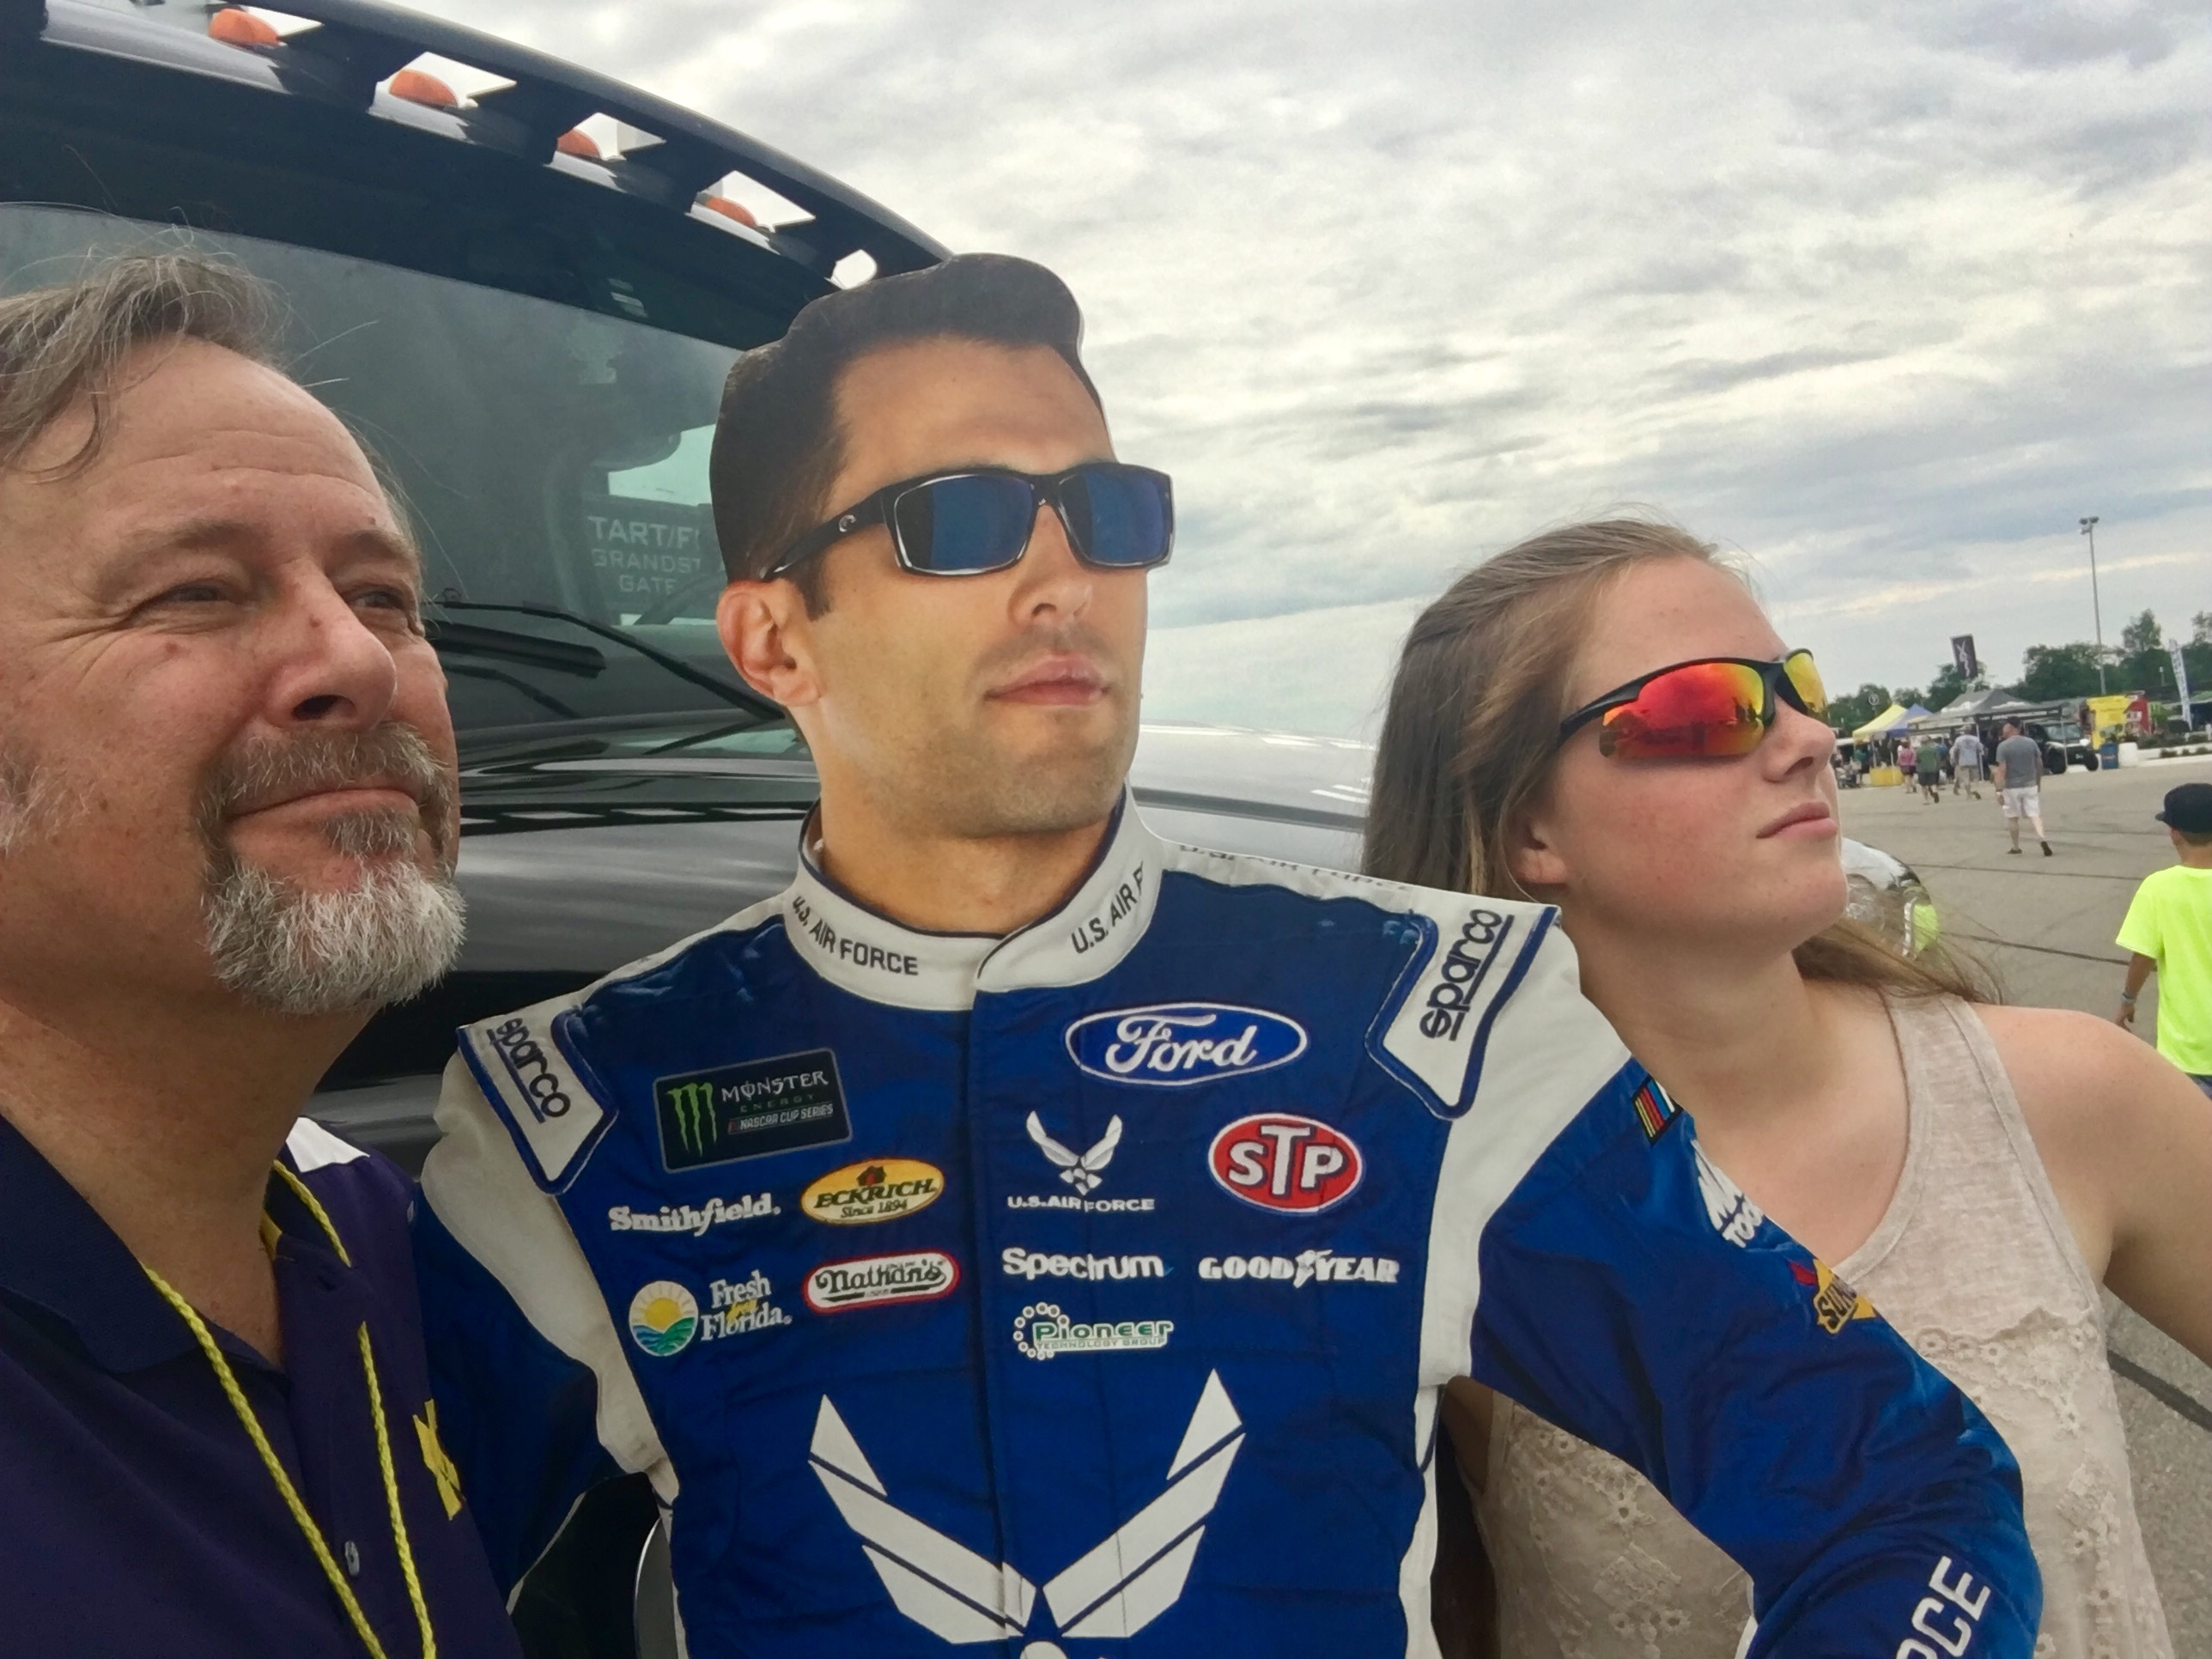 man and woman flanking cutout of nascar driver in uniform